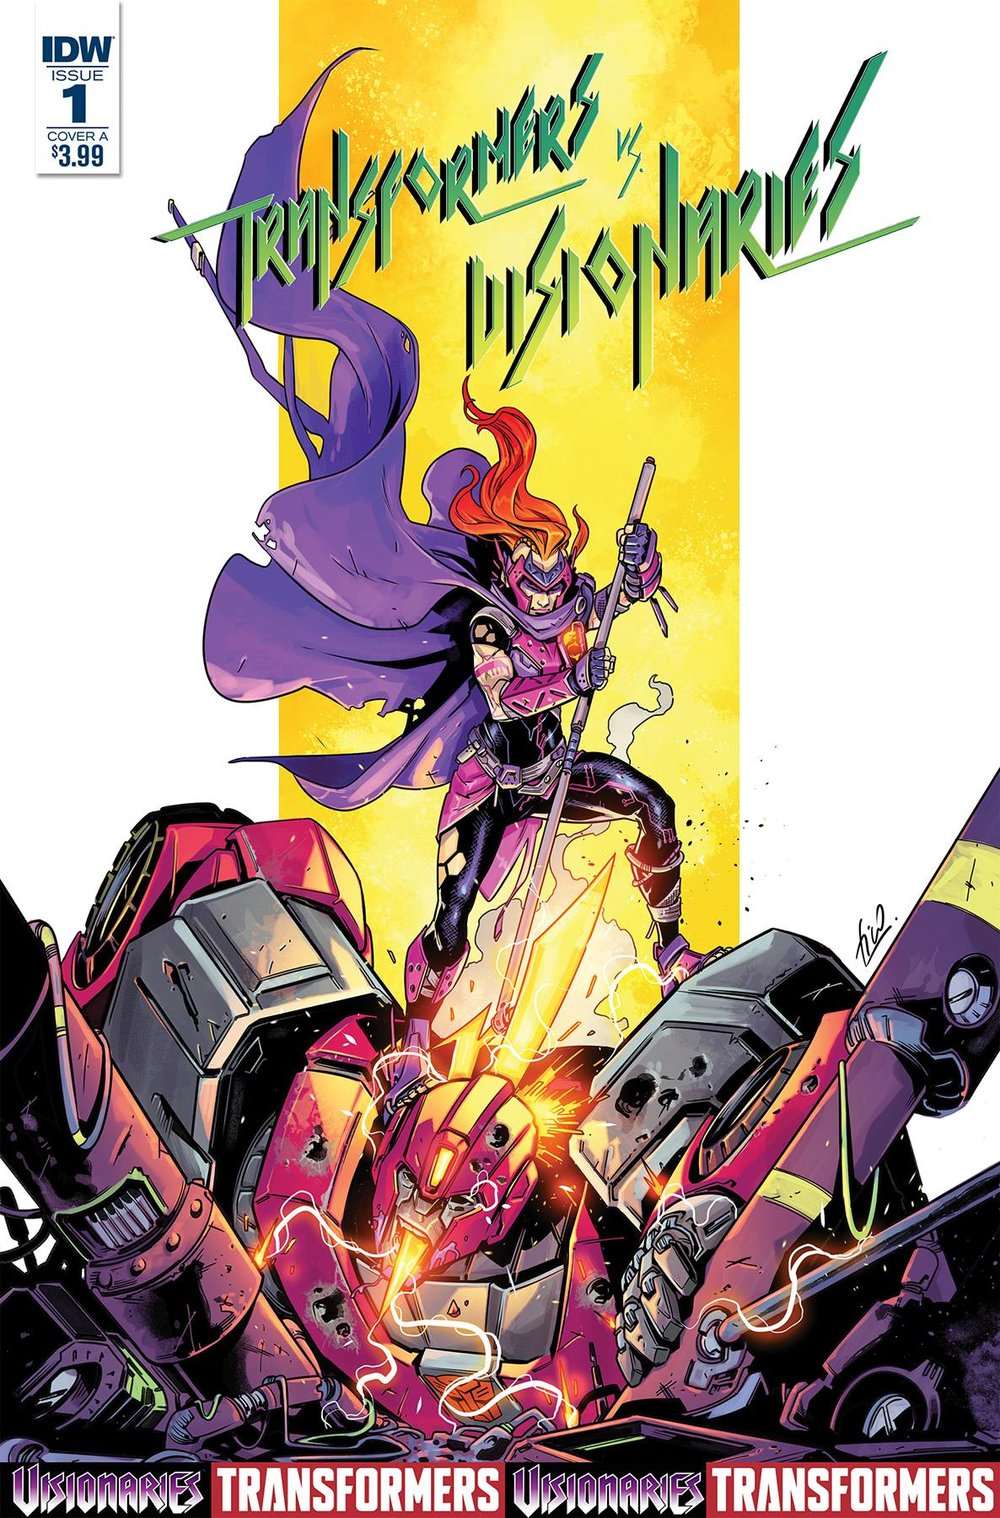 TRANSFORMERS VS THE VISIONARIES 1 of 5 CVR A OSSIO.jpg